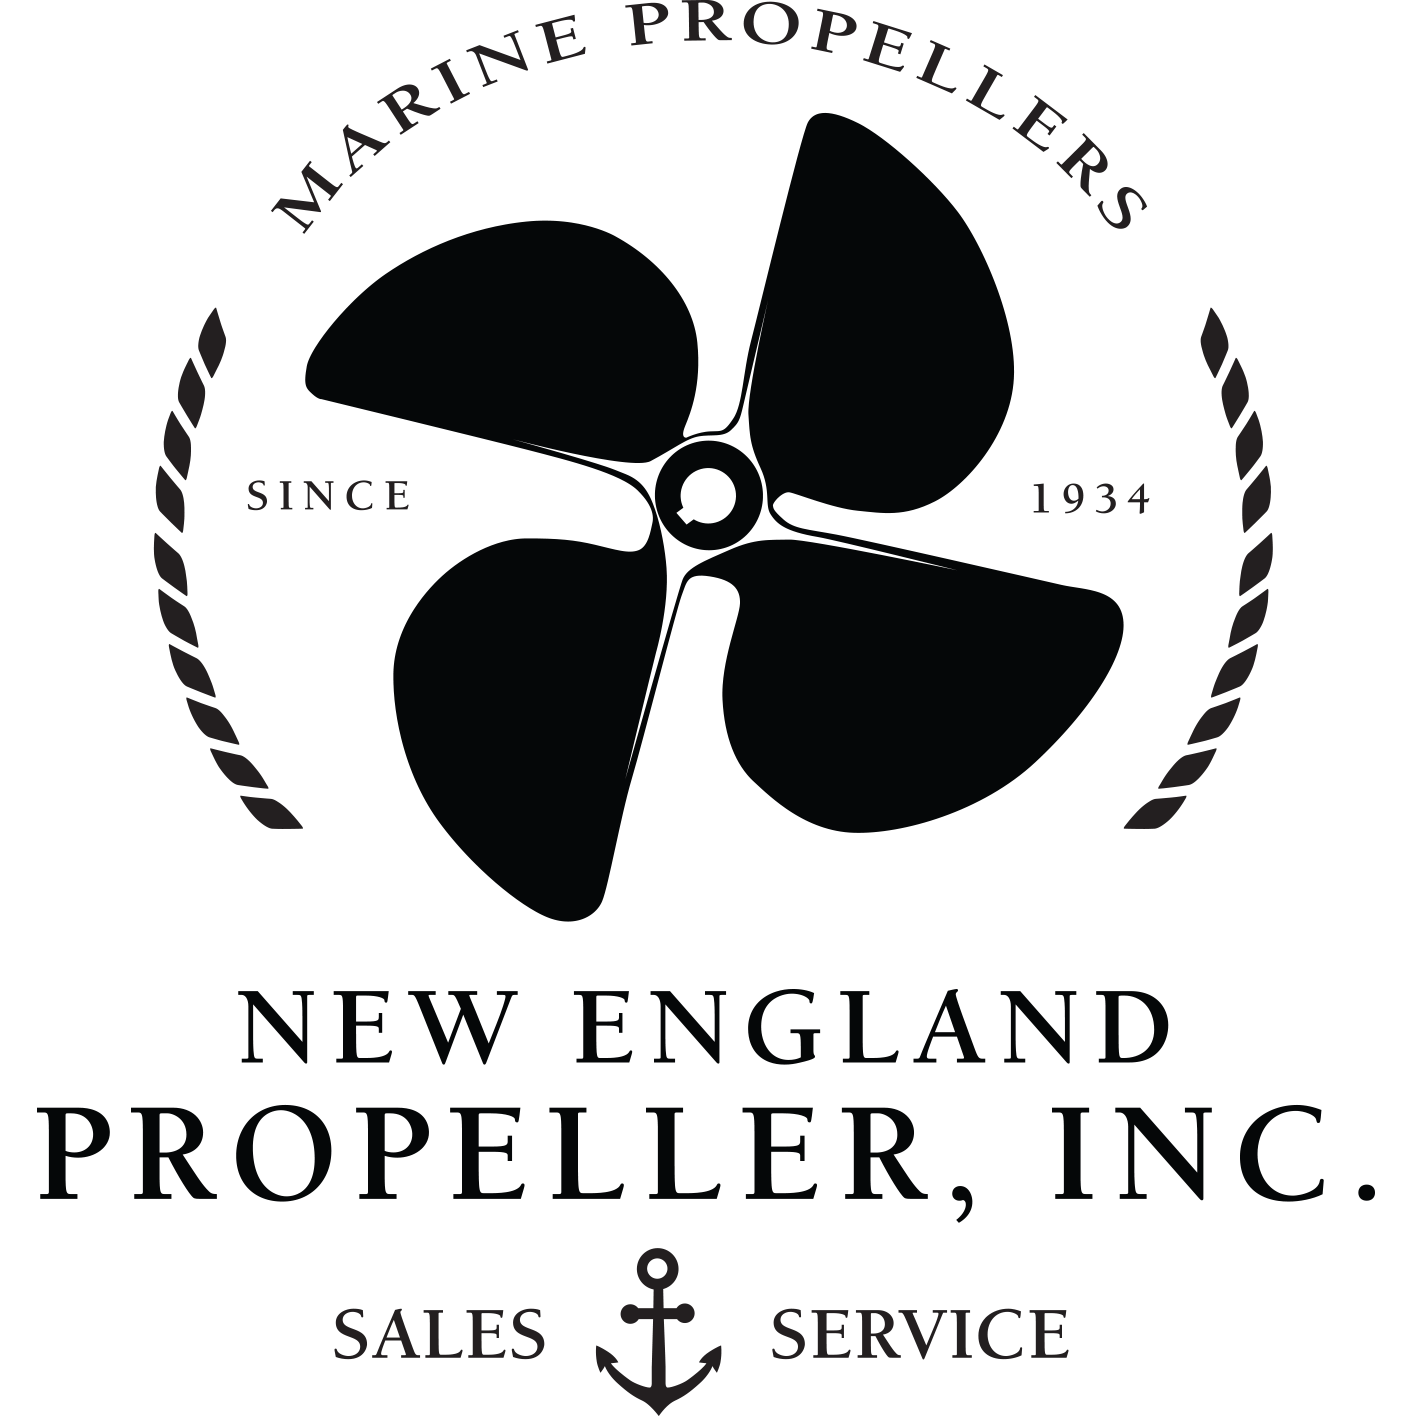 New England Propeller Inc. 9 Apollo 11 Rd. Plymouth, MA Boat Repairing -  MapQuest